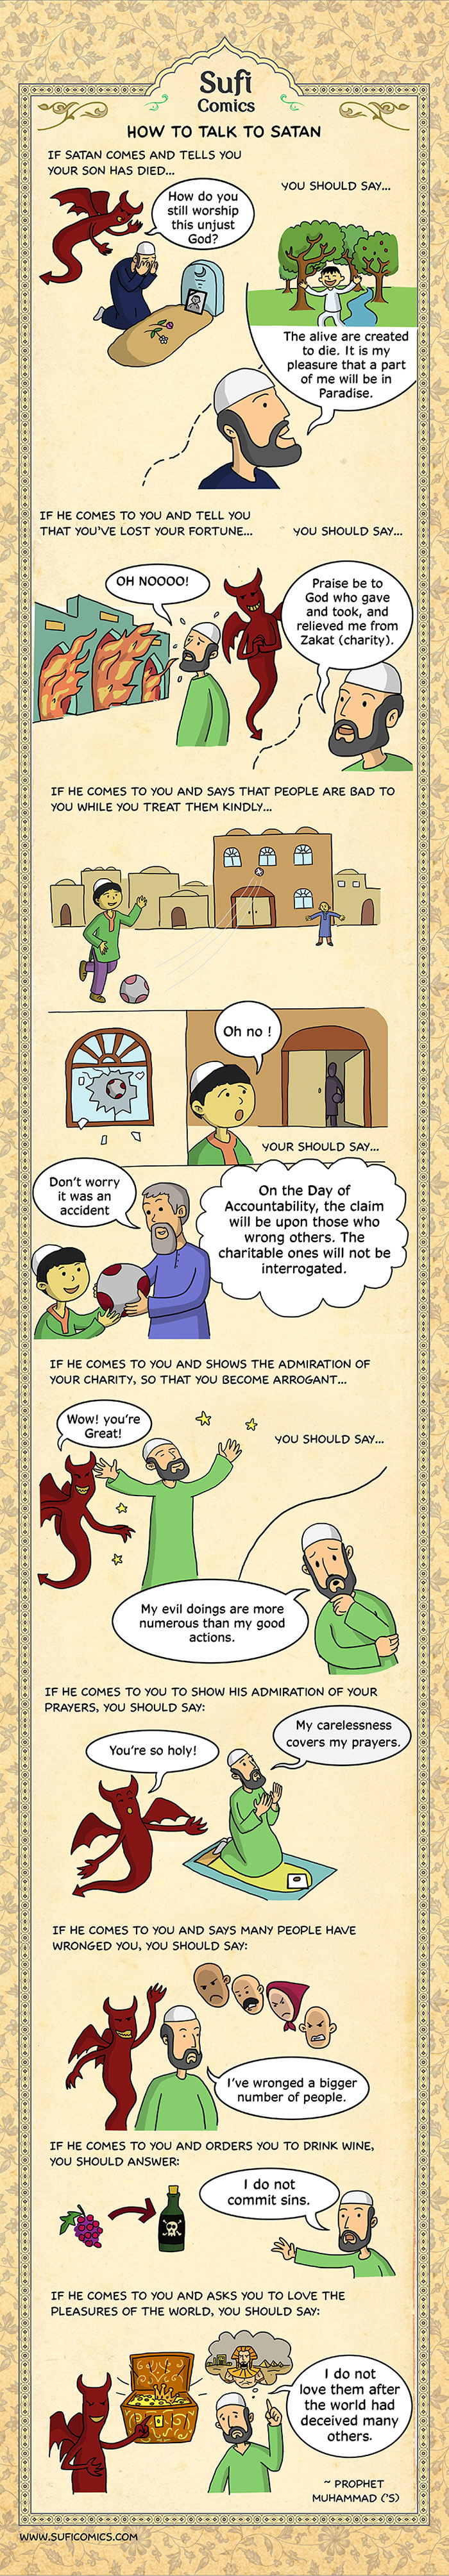 sufi-comics-how-to-talk-to-satan-1